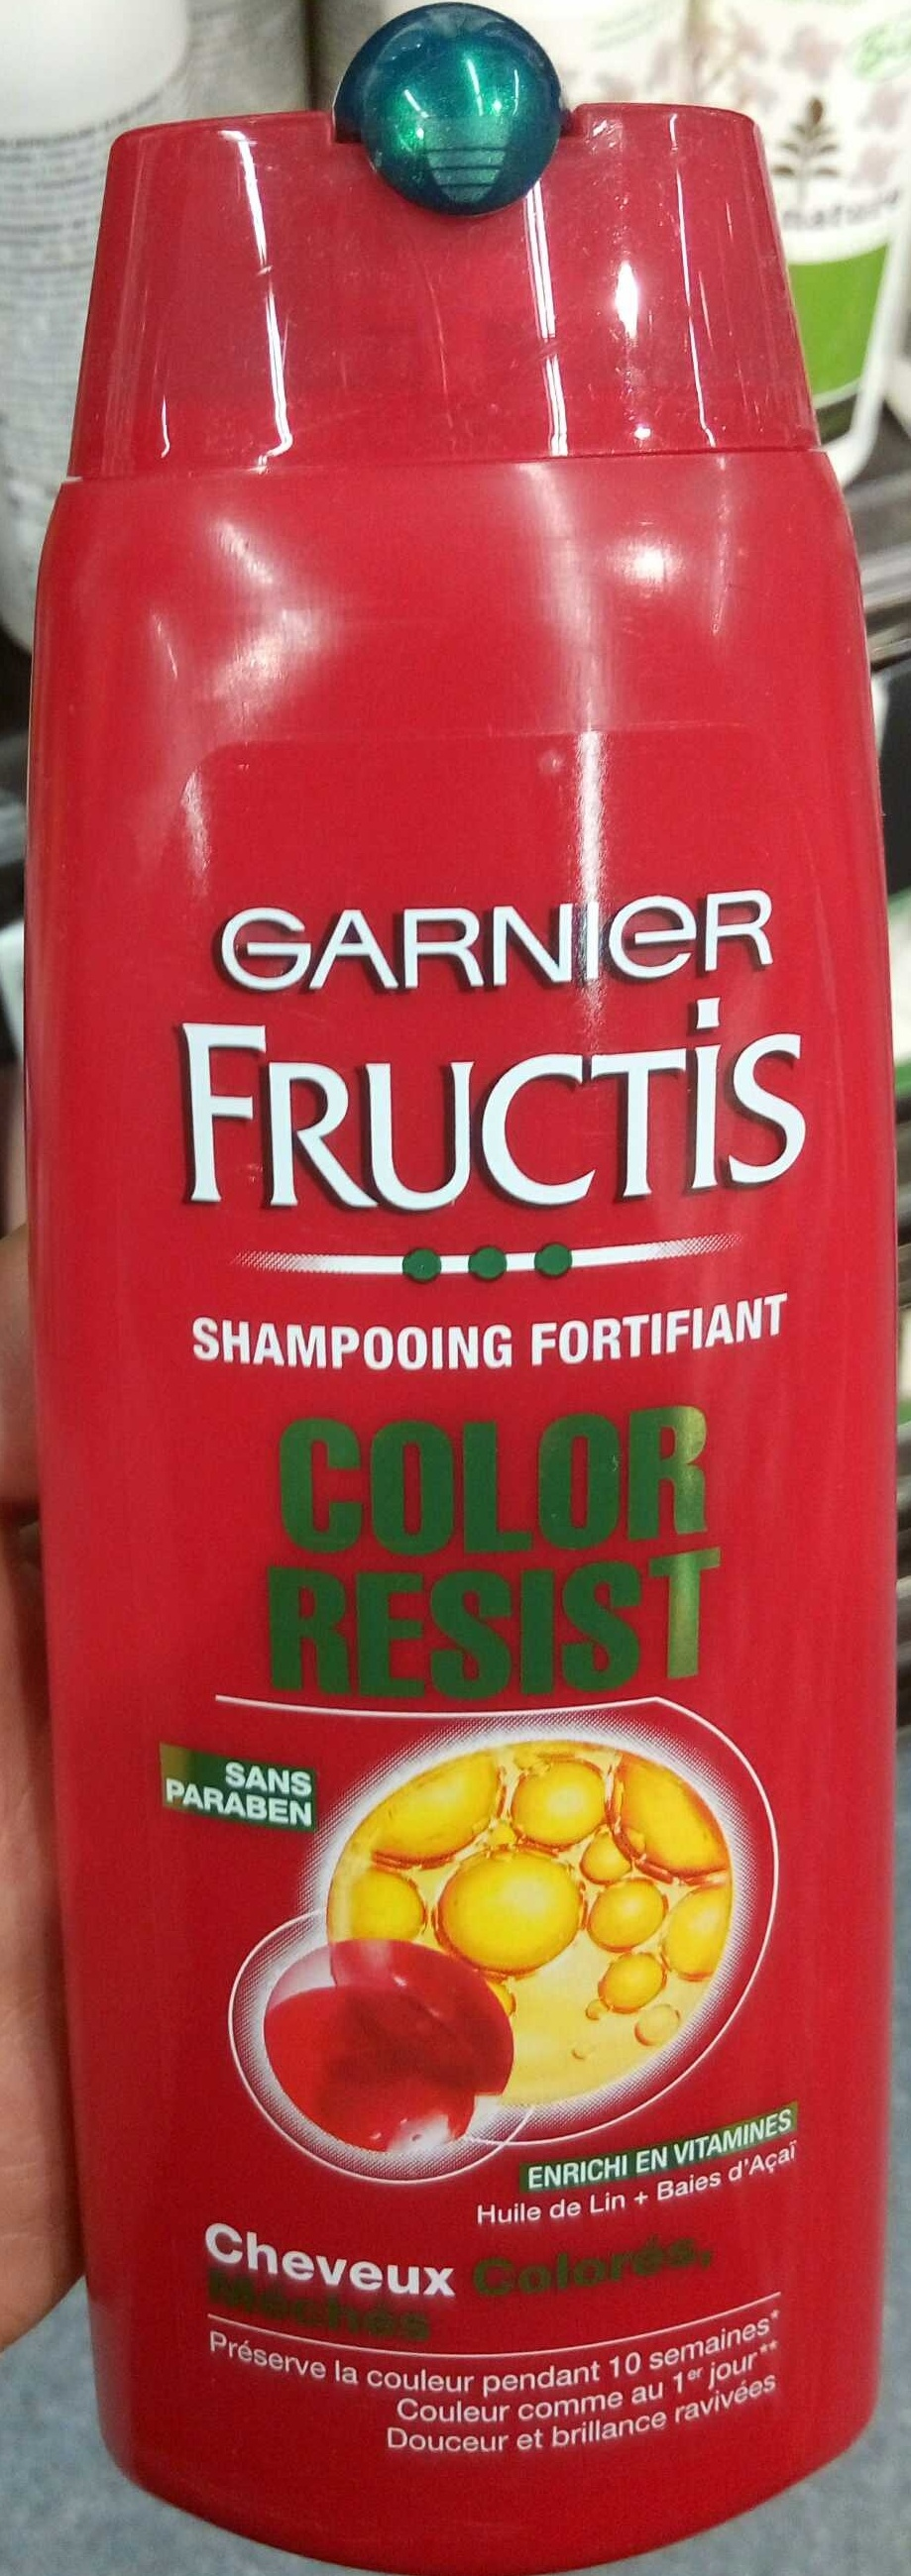 Fructis Shampooing fortifiant Color Resist - Product